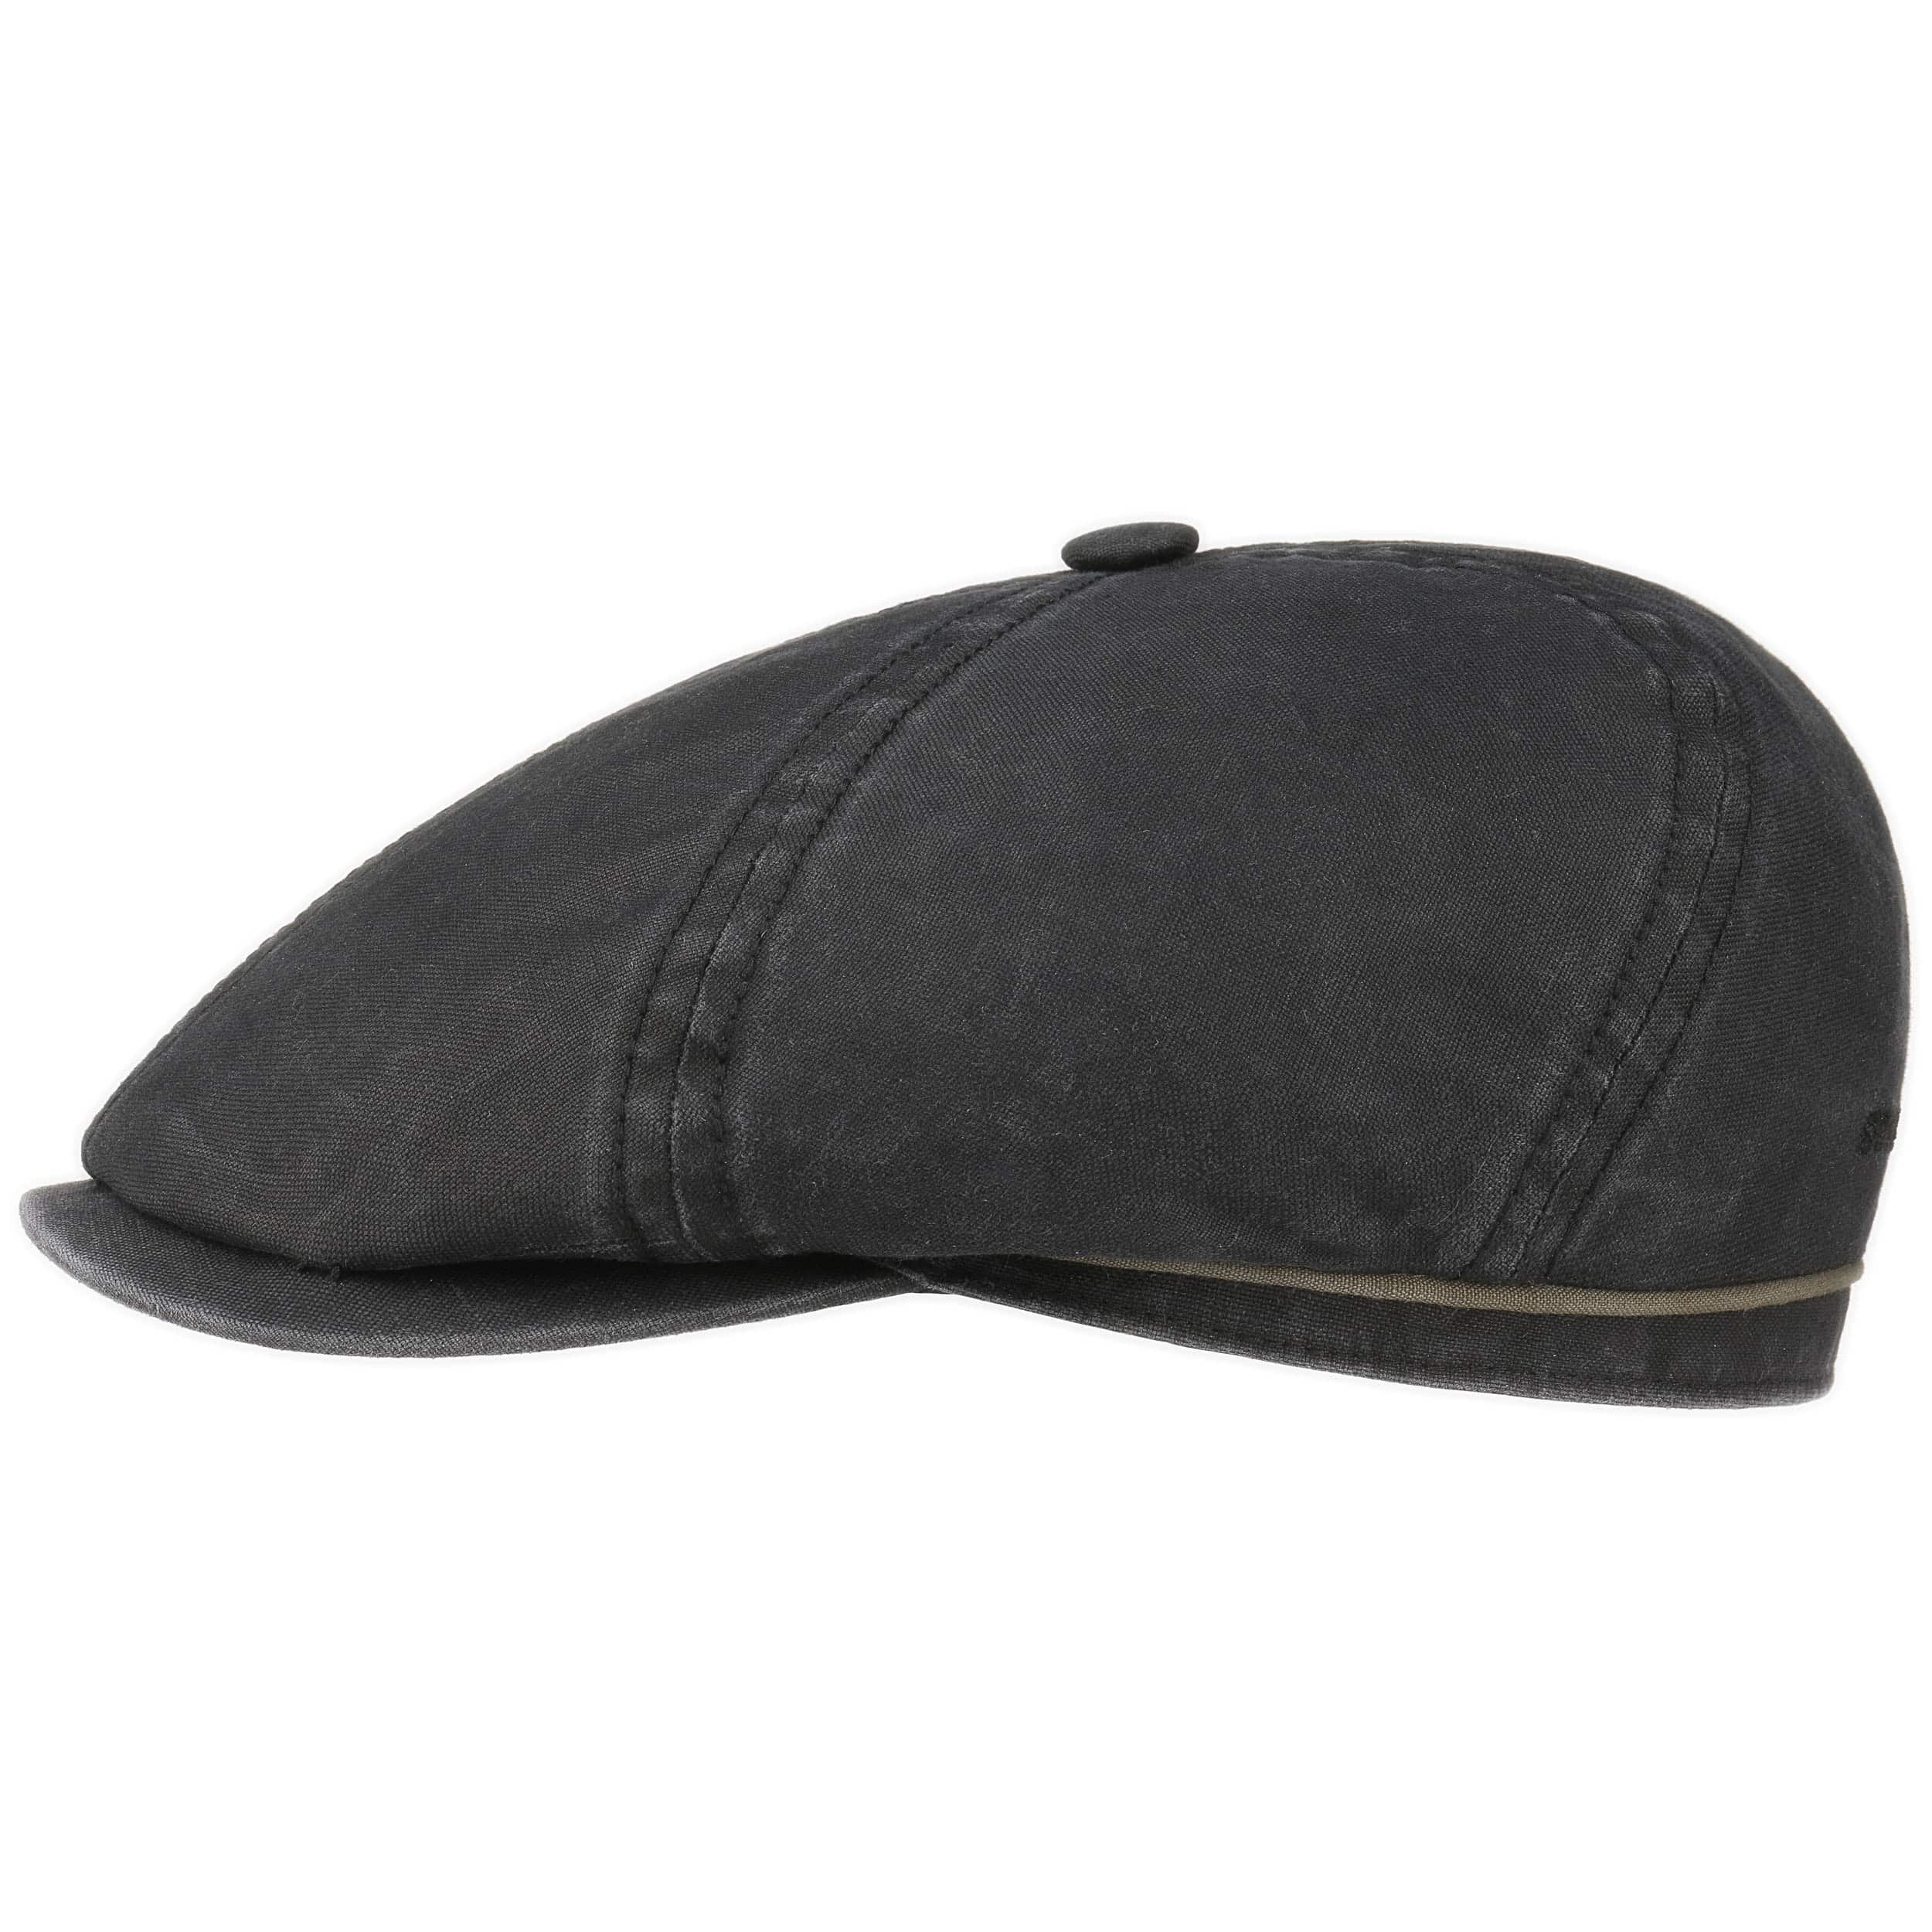 ... Brooklin Cotton Newsboy Cap by Stetson - black 1 9fda2d69cf9